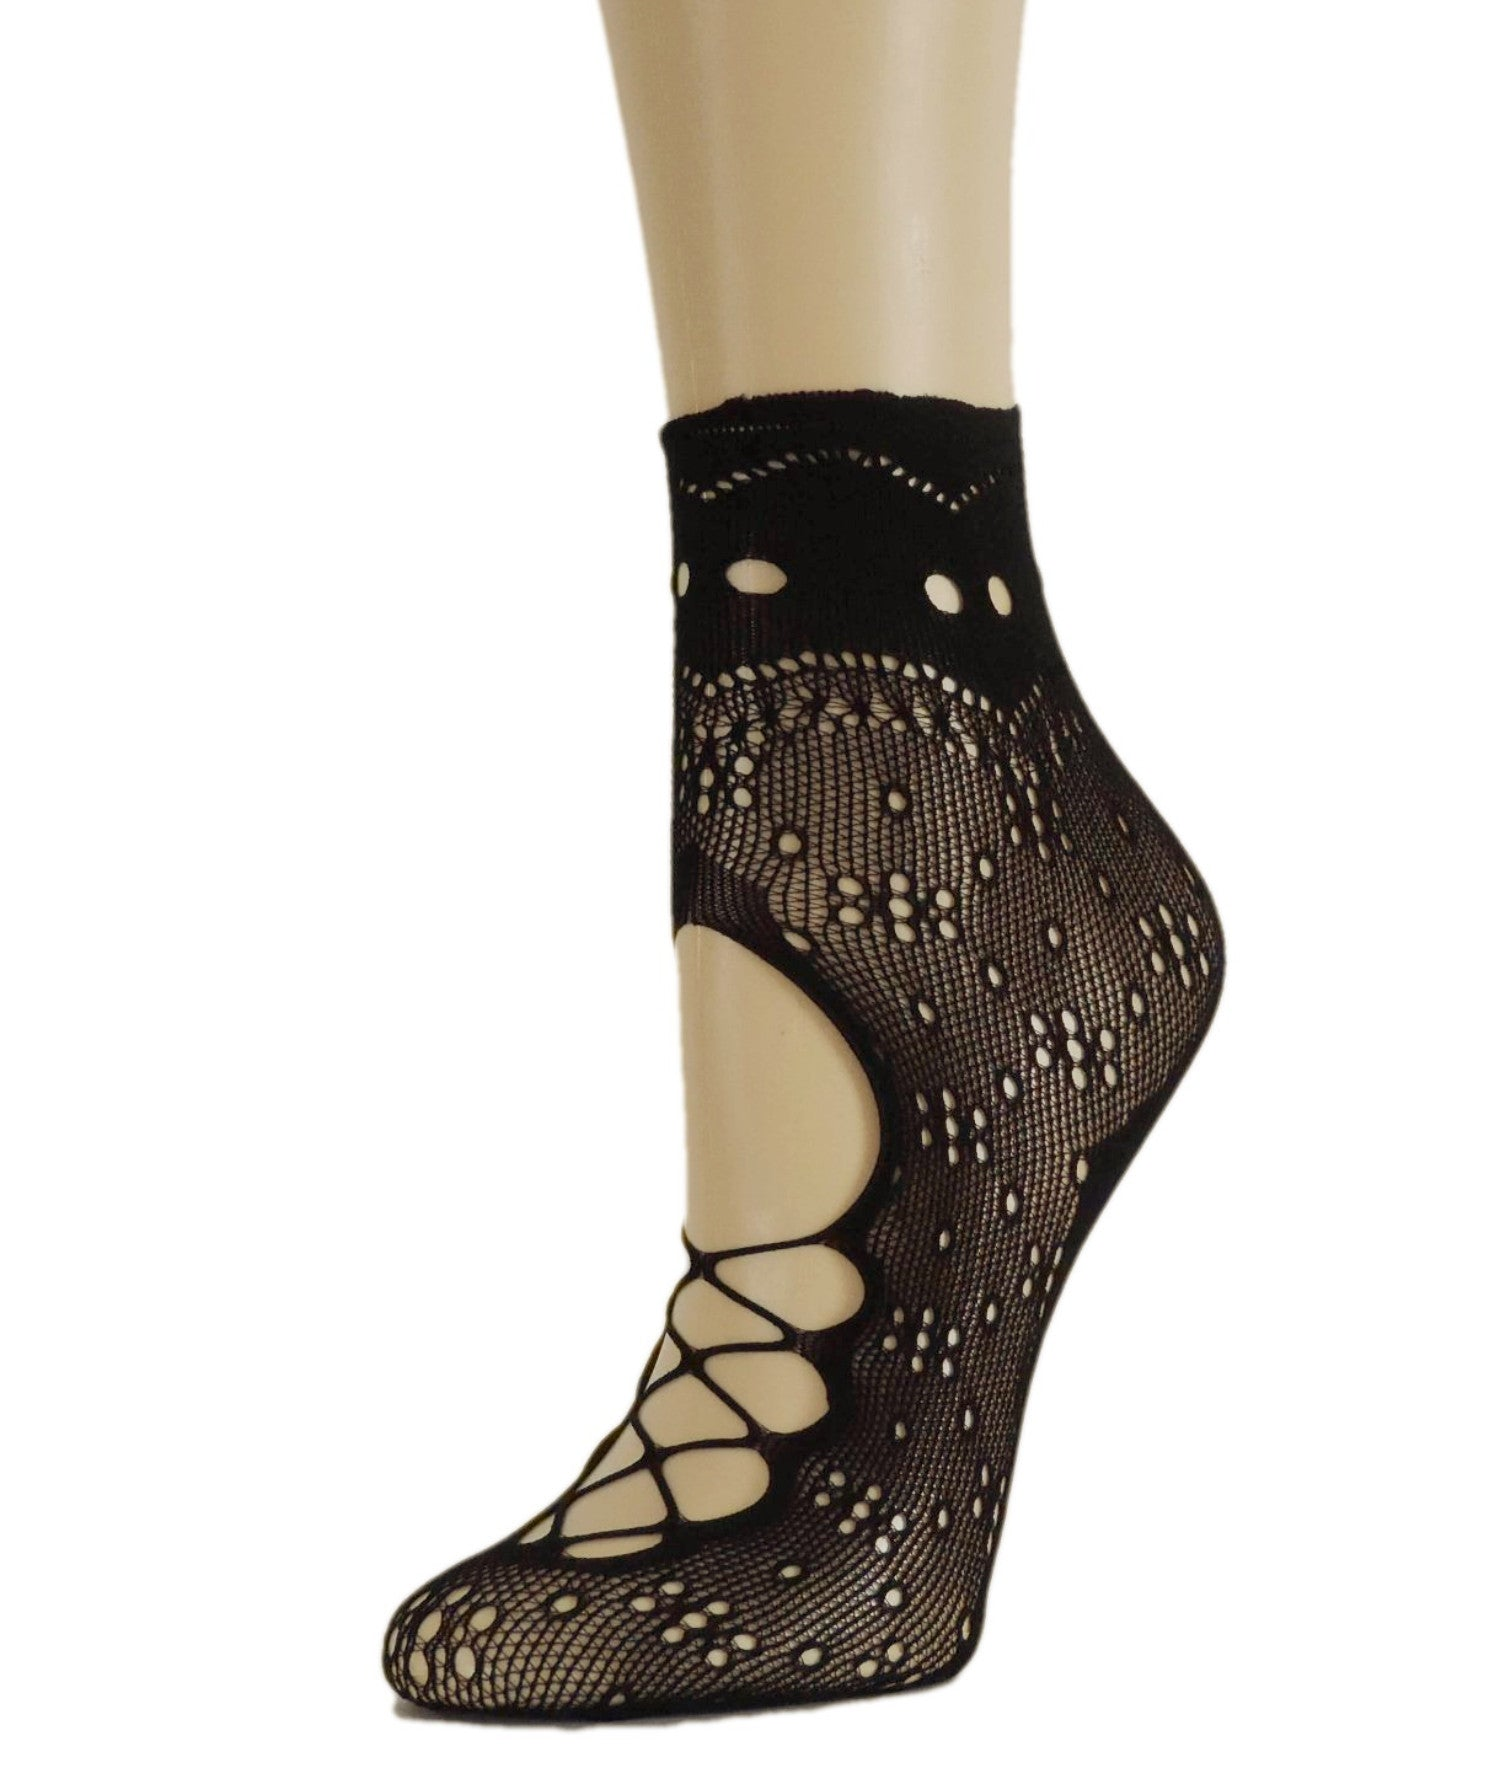 Wild Black Mesh Socks - Global Trendz Fashion®